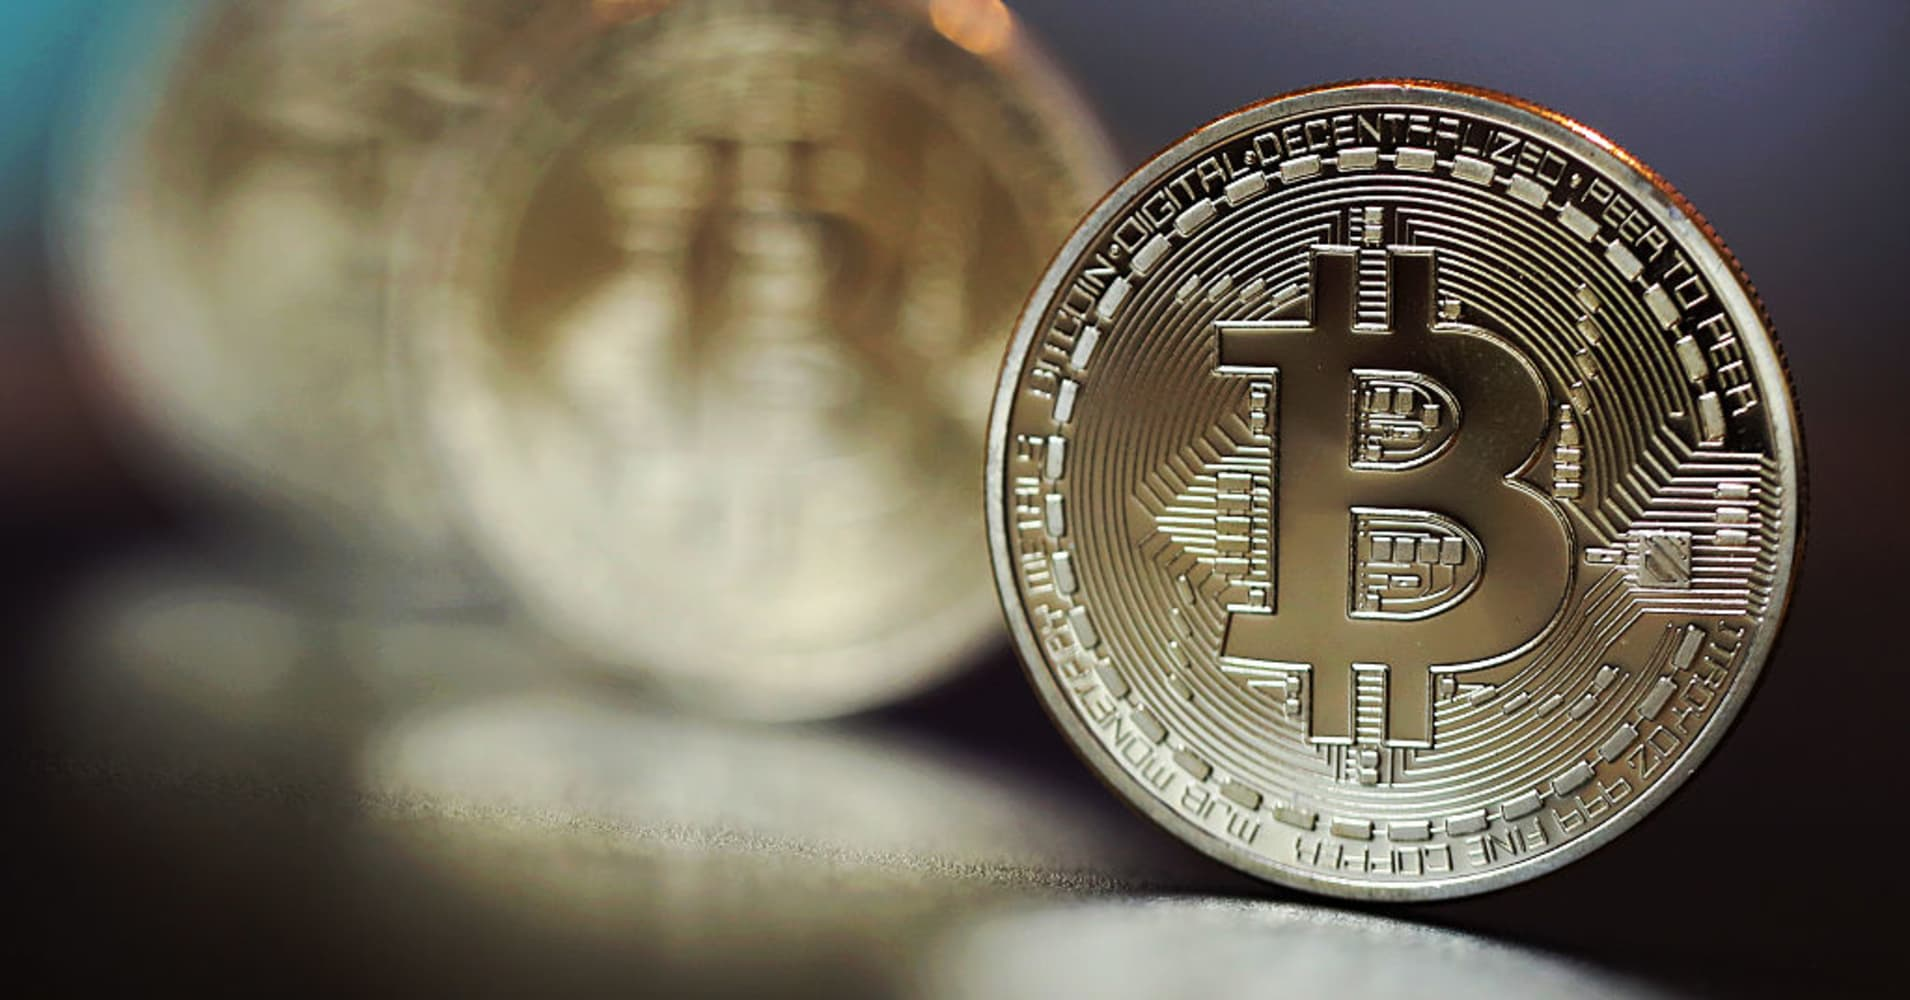 Bitcoin nears record high price after 'milestone' in fierce debate over its future - CNBC